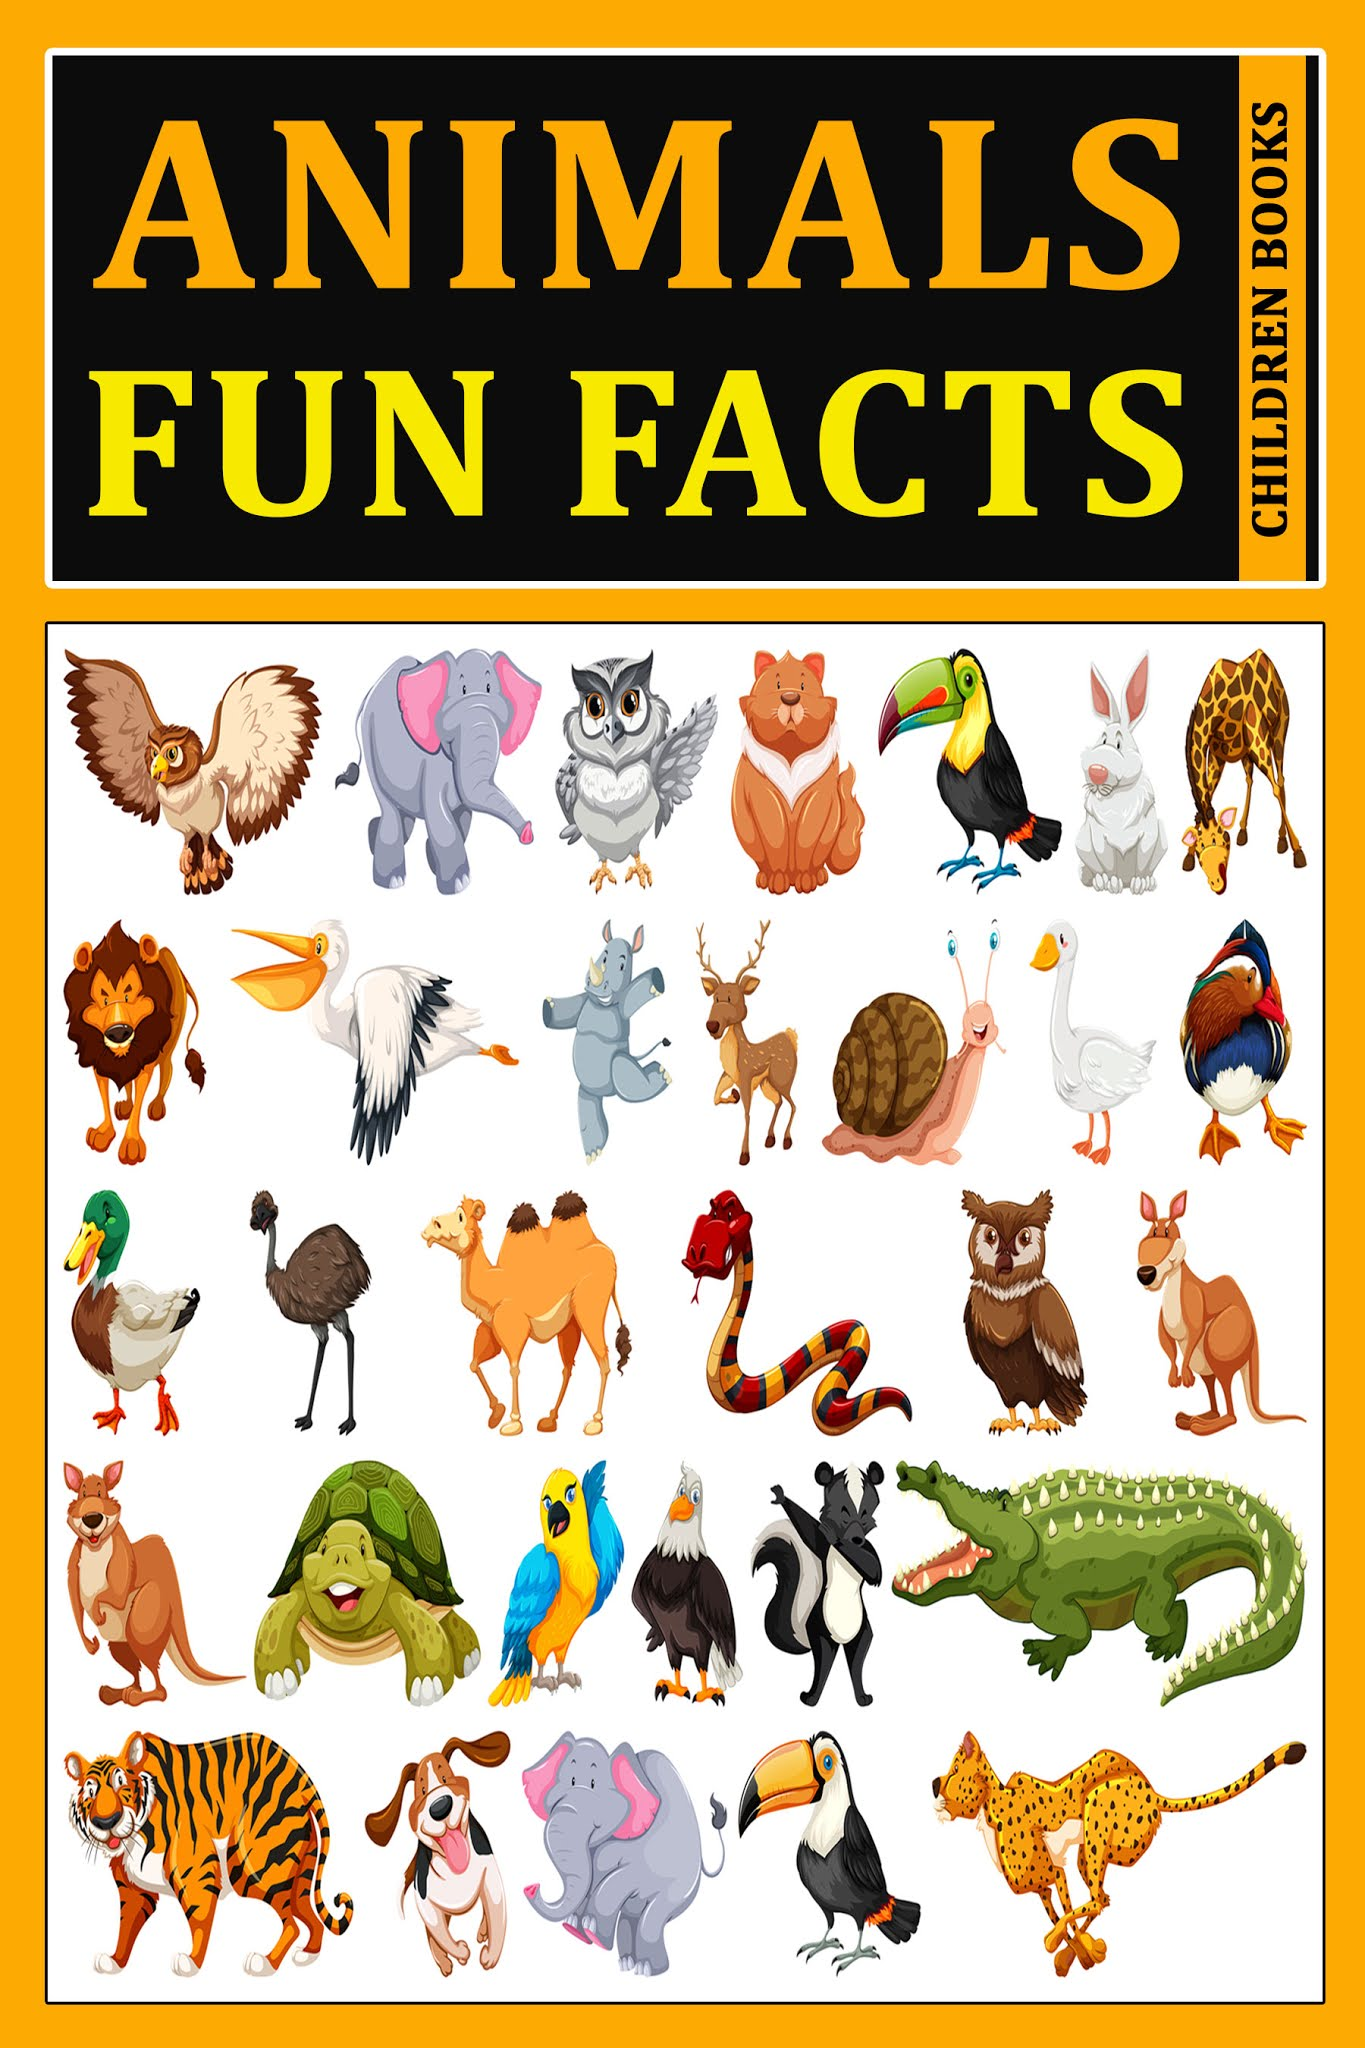 Animal Facts Fun For Kids